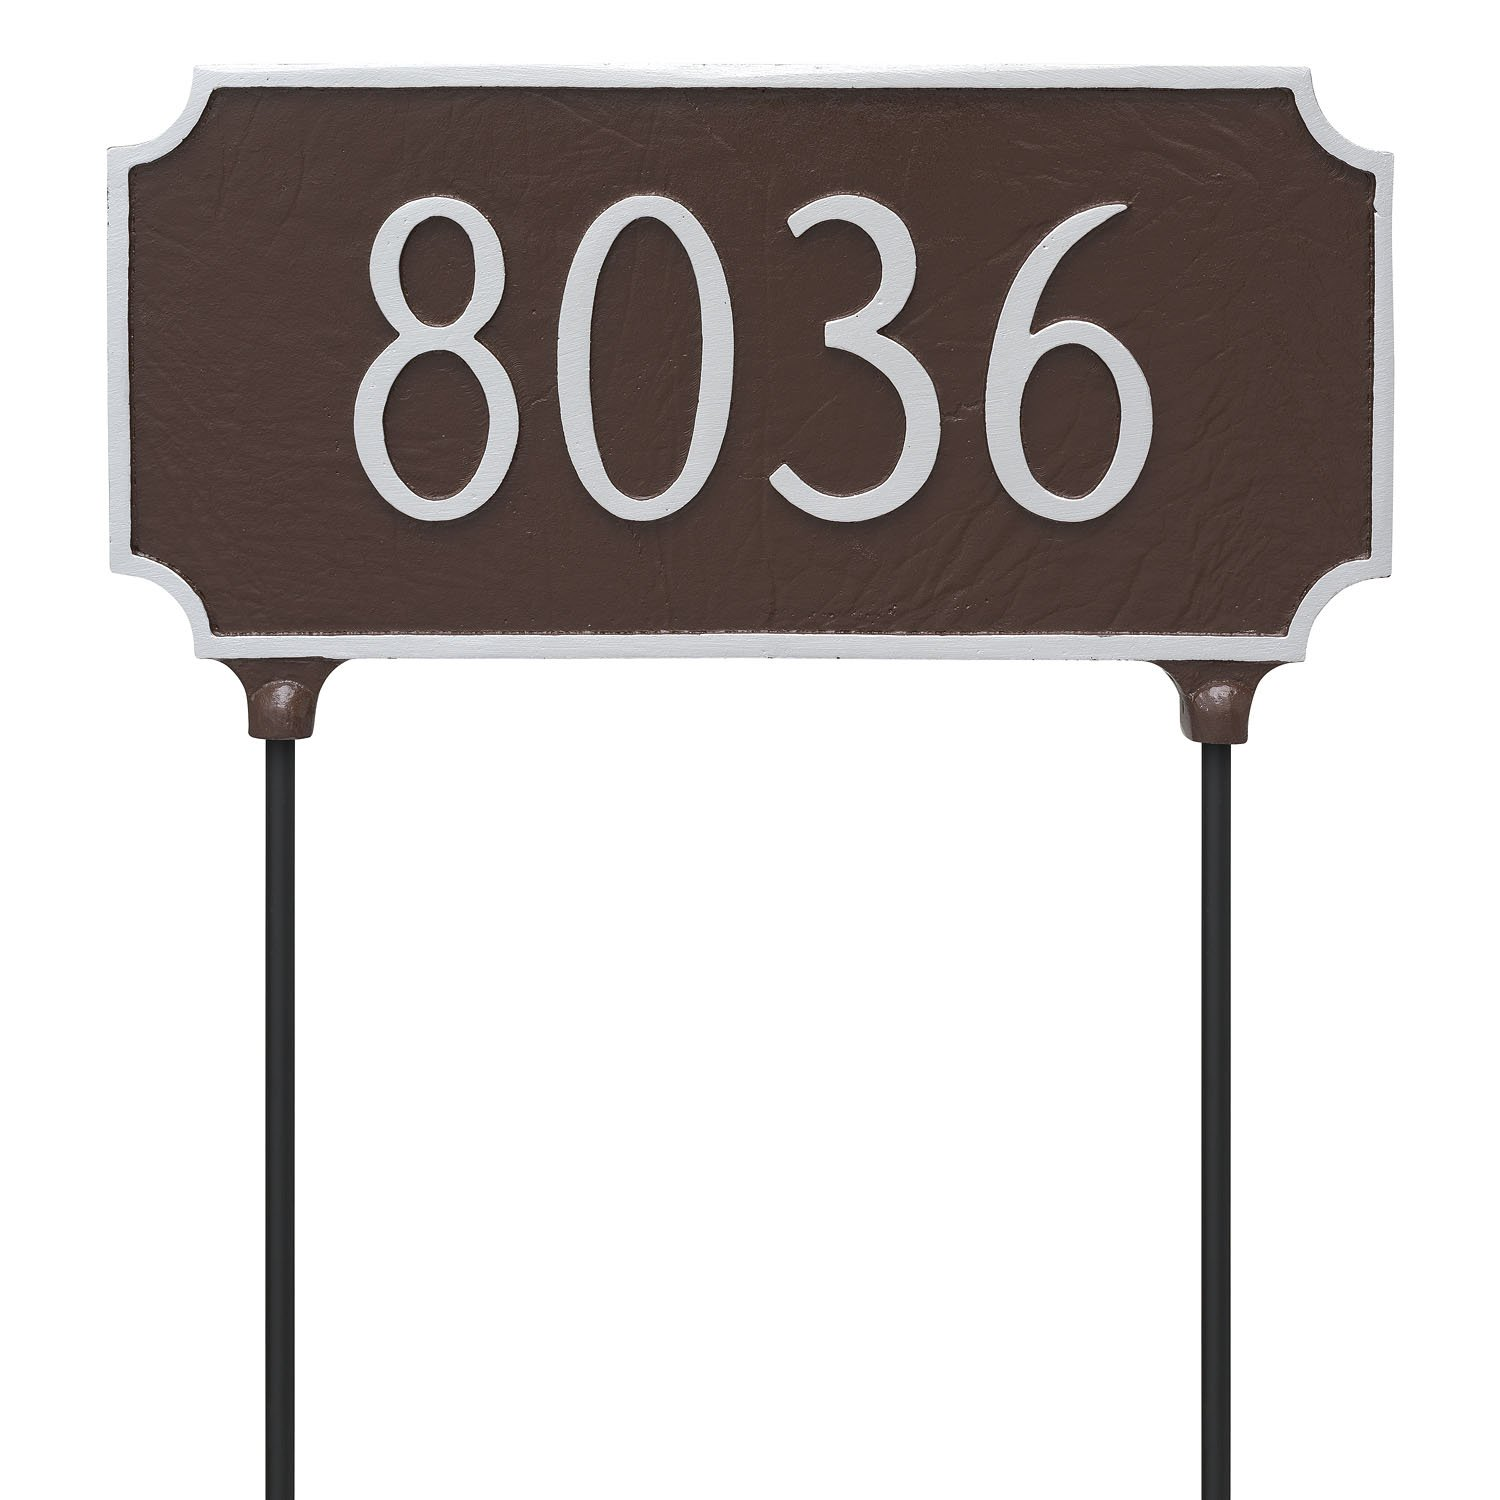 Montague Metal TSL-0005S1-L-BG Double Sided Lawn Princeton Address Sign Plaque with Stake, 7.25'' x 15.75'', Black/Gold